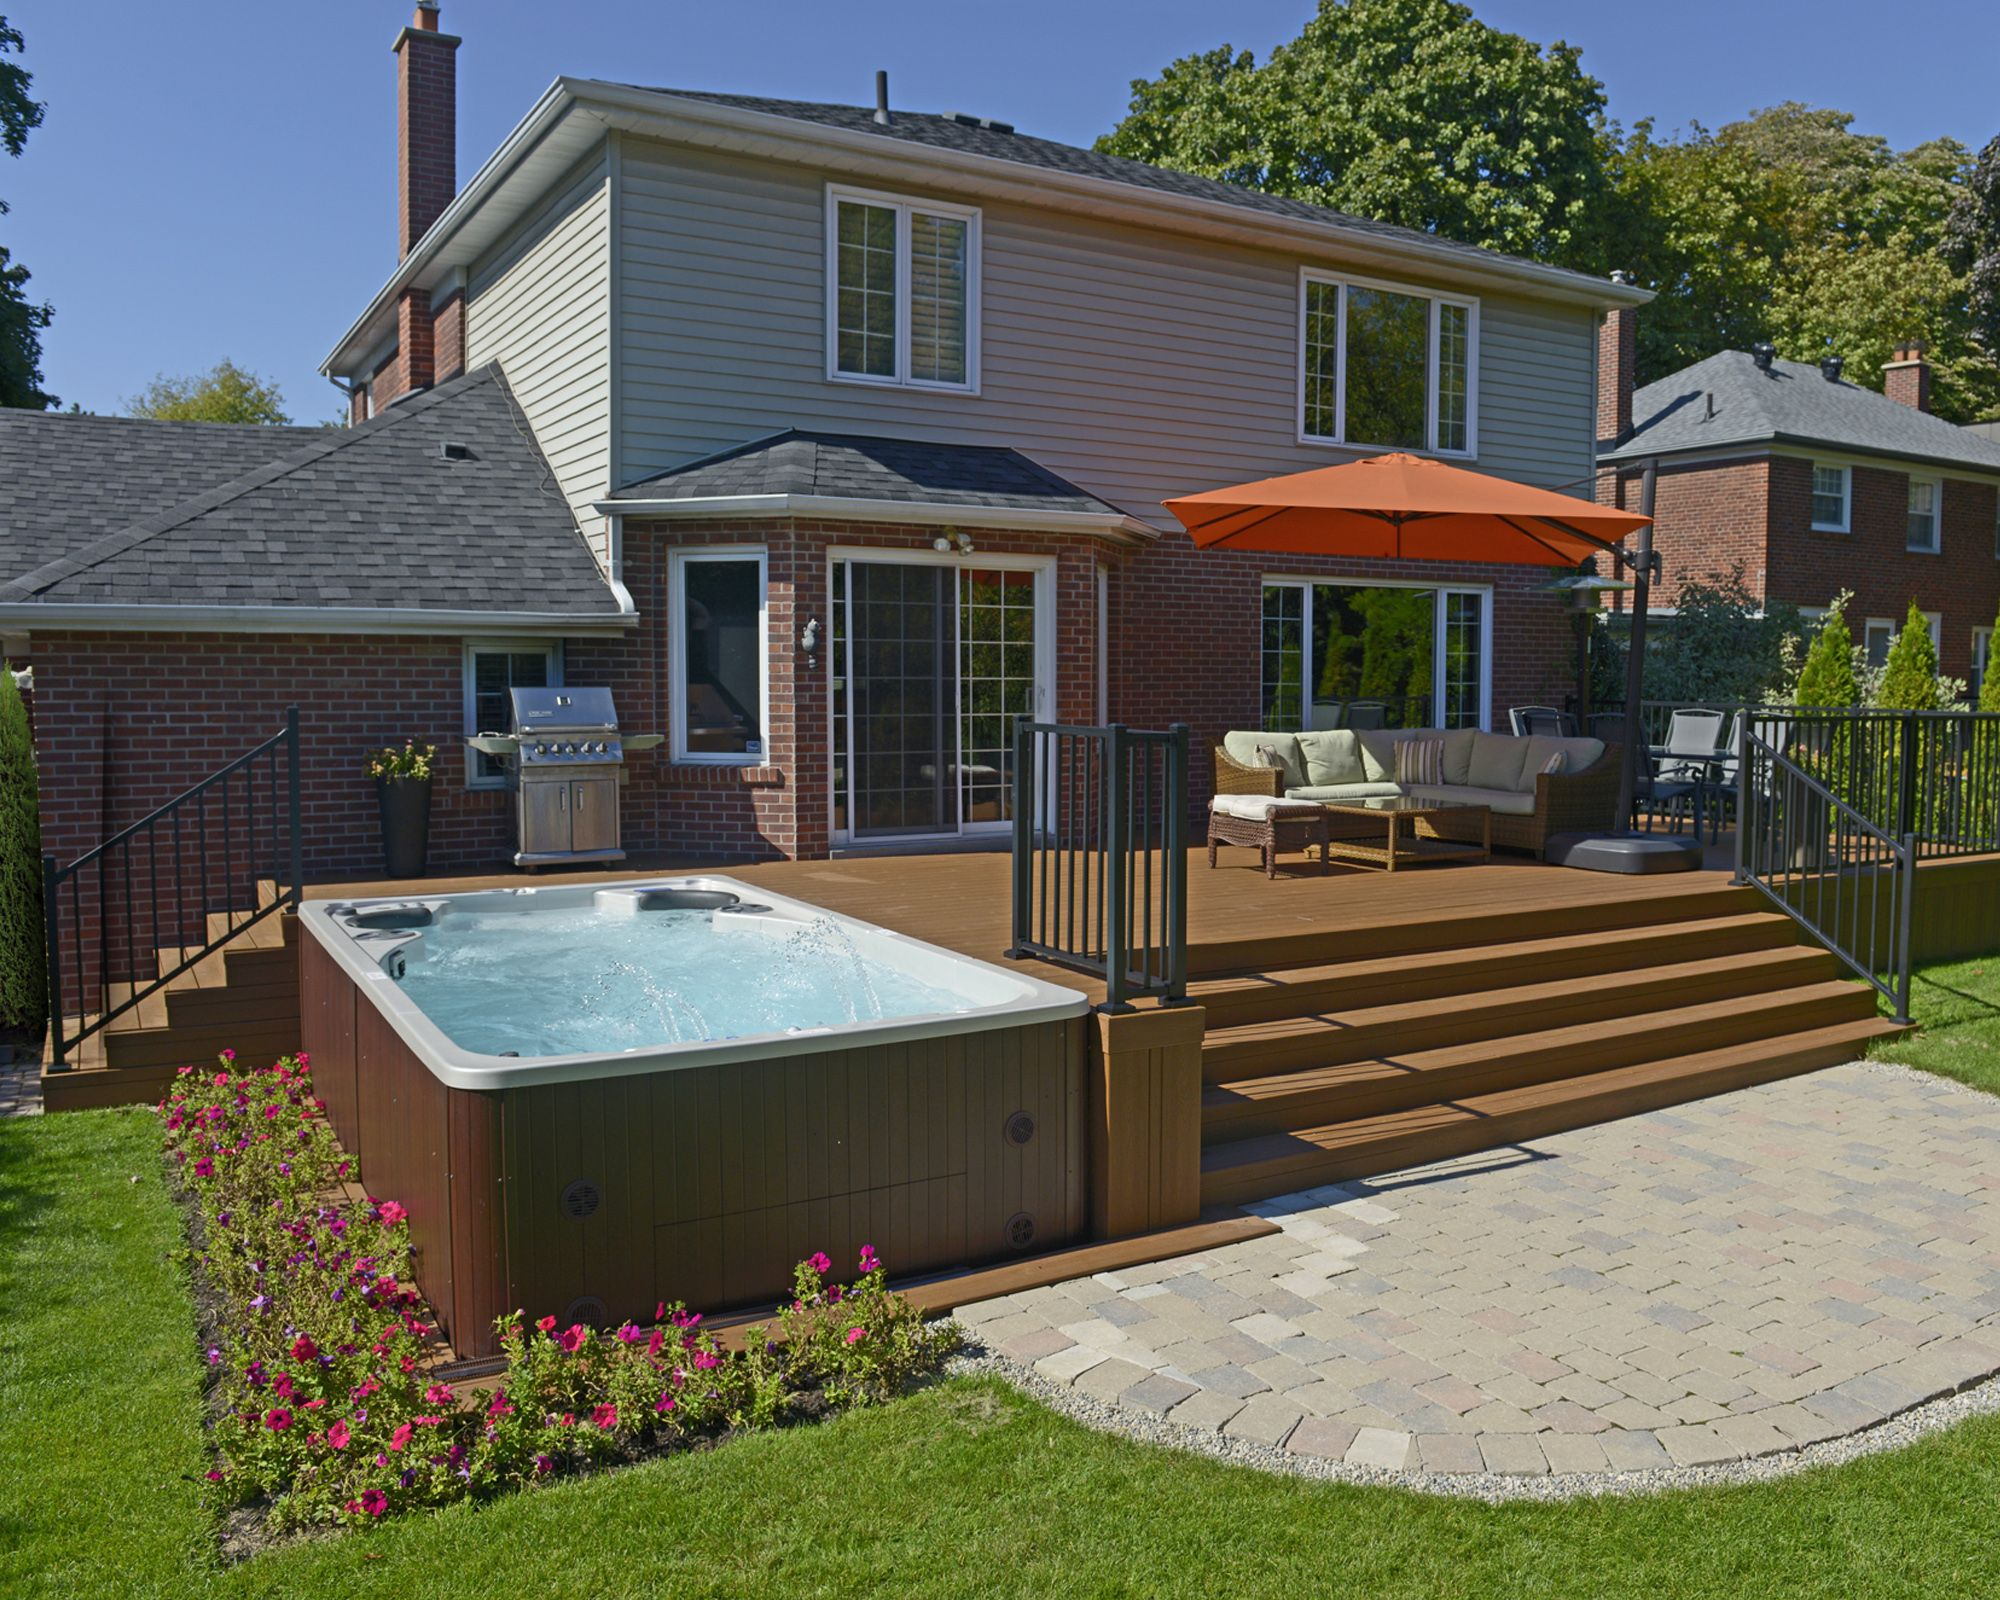 Swim Spa Backyard Designs hydropool self cleaning swim spa installed next to a deck | pools in